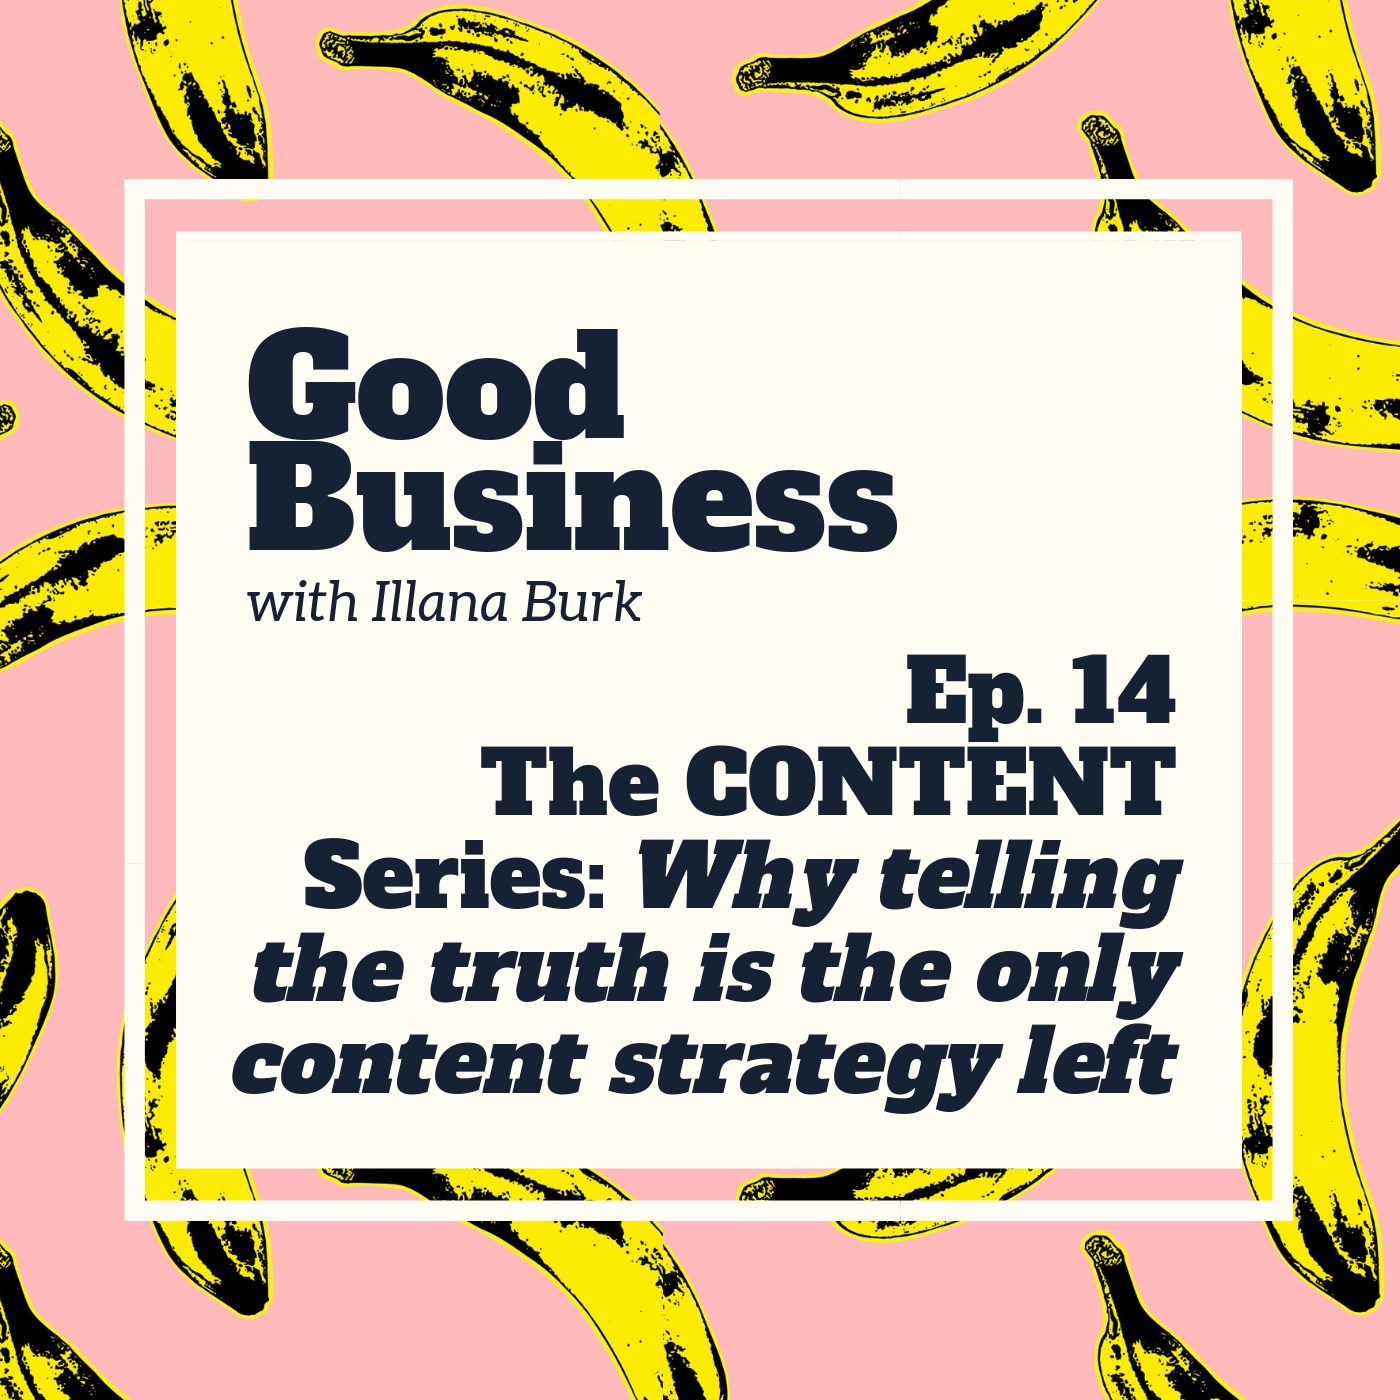 The Content Series Part 2: Why telling the truth is the last frontier of content marketing | GB14